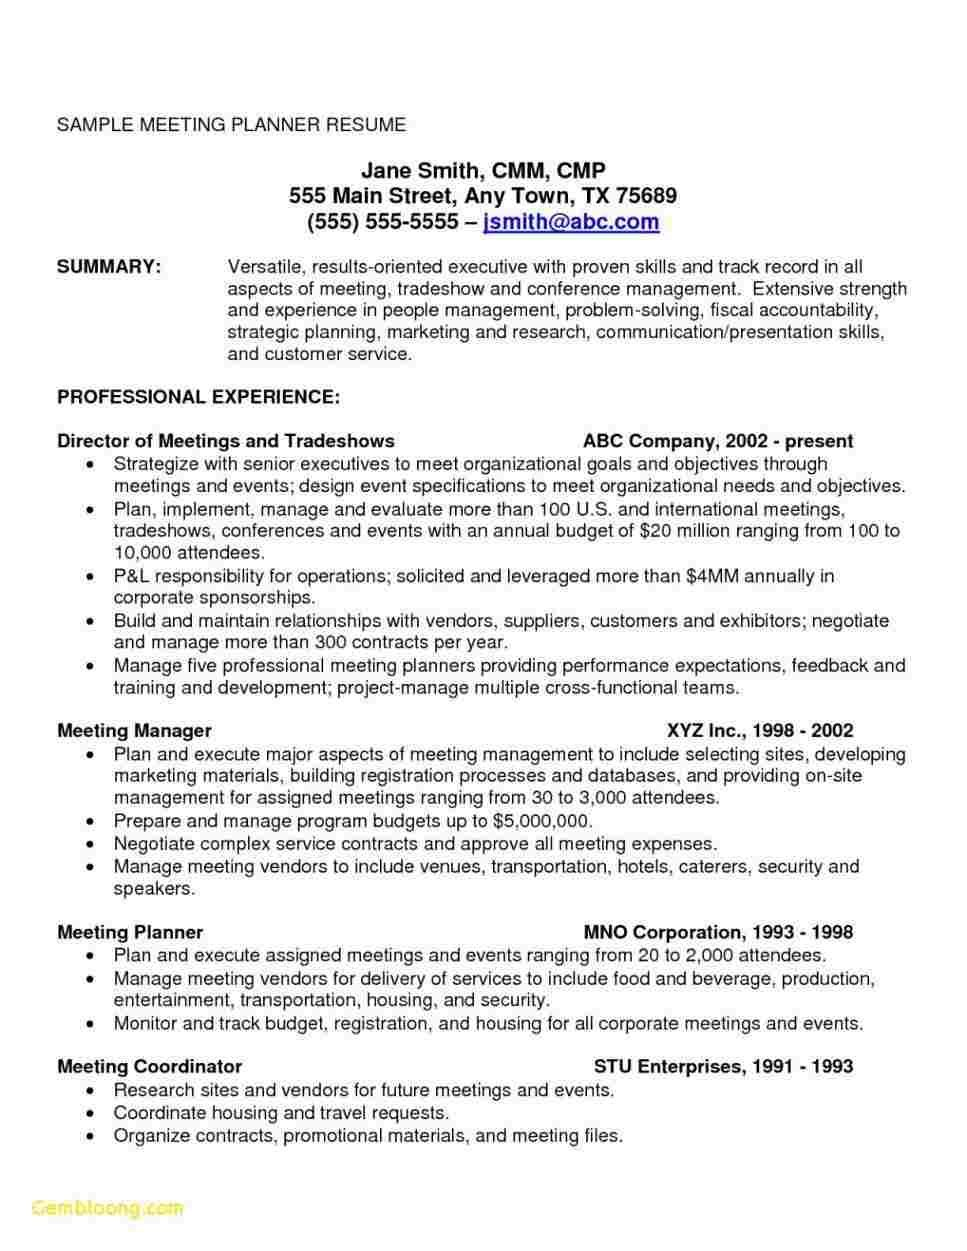 65 Cool Collection Of Sample Resume Onsite Experience With Images